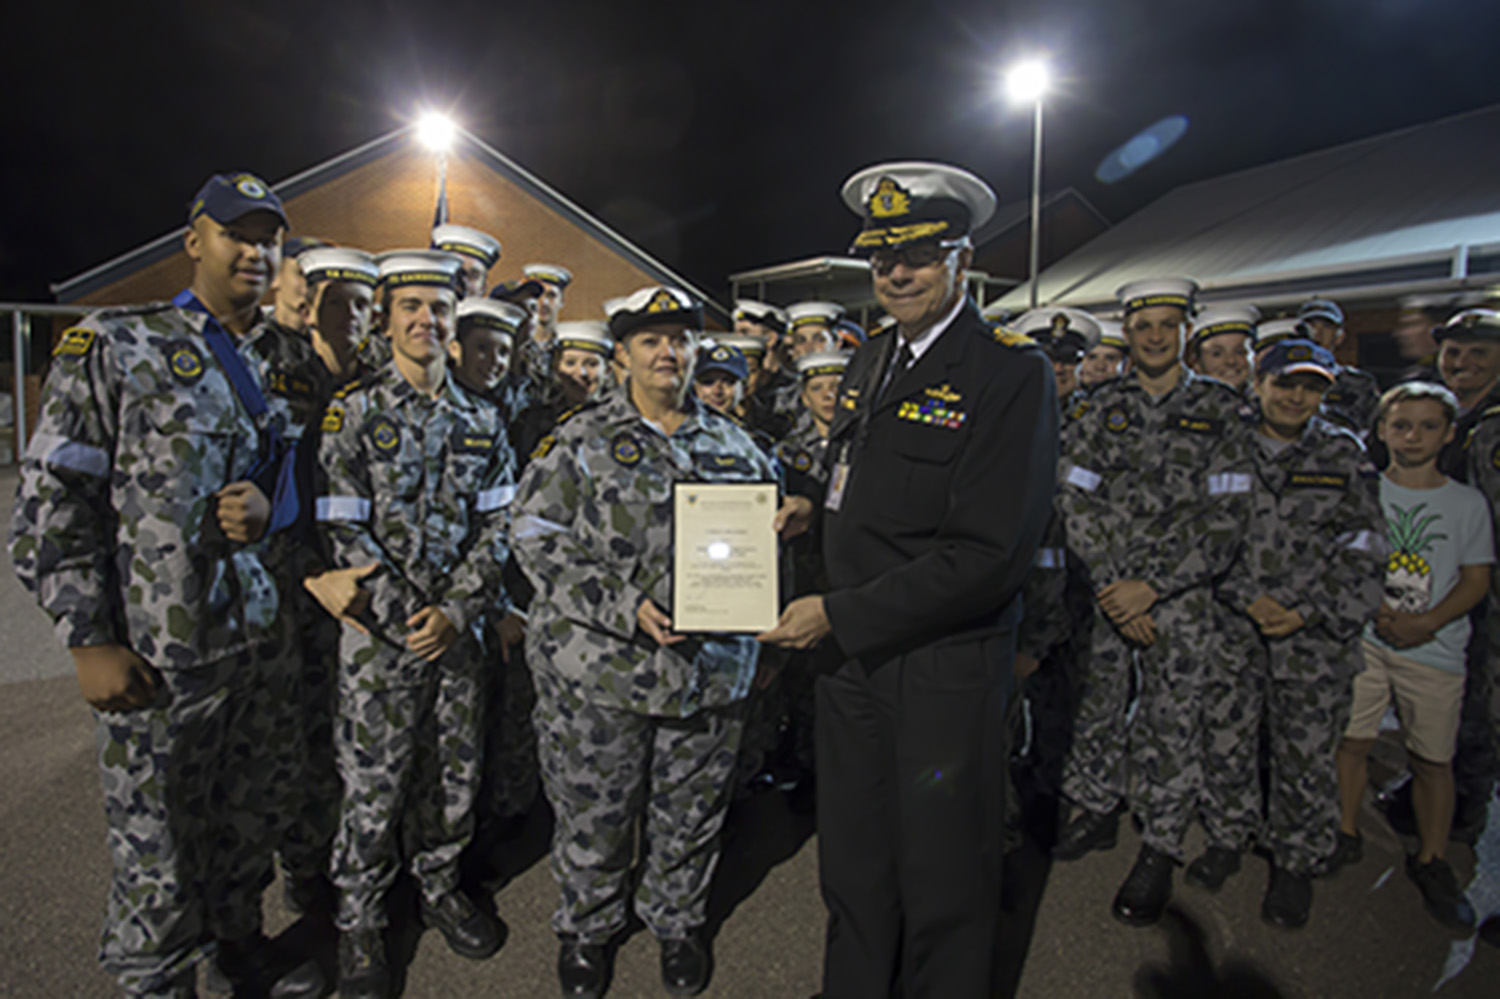 A Certificate of Recognition was presented to the cadets of TS Canberra by Rear Admiral Bruce Kafer, Head Reserve and Youth Division and Commander ADF Cadets